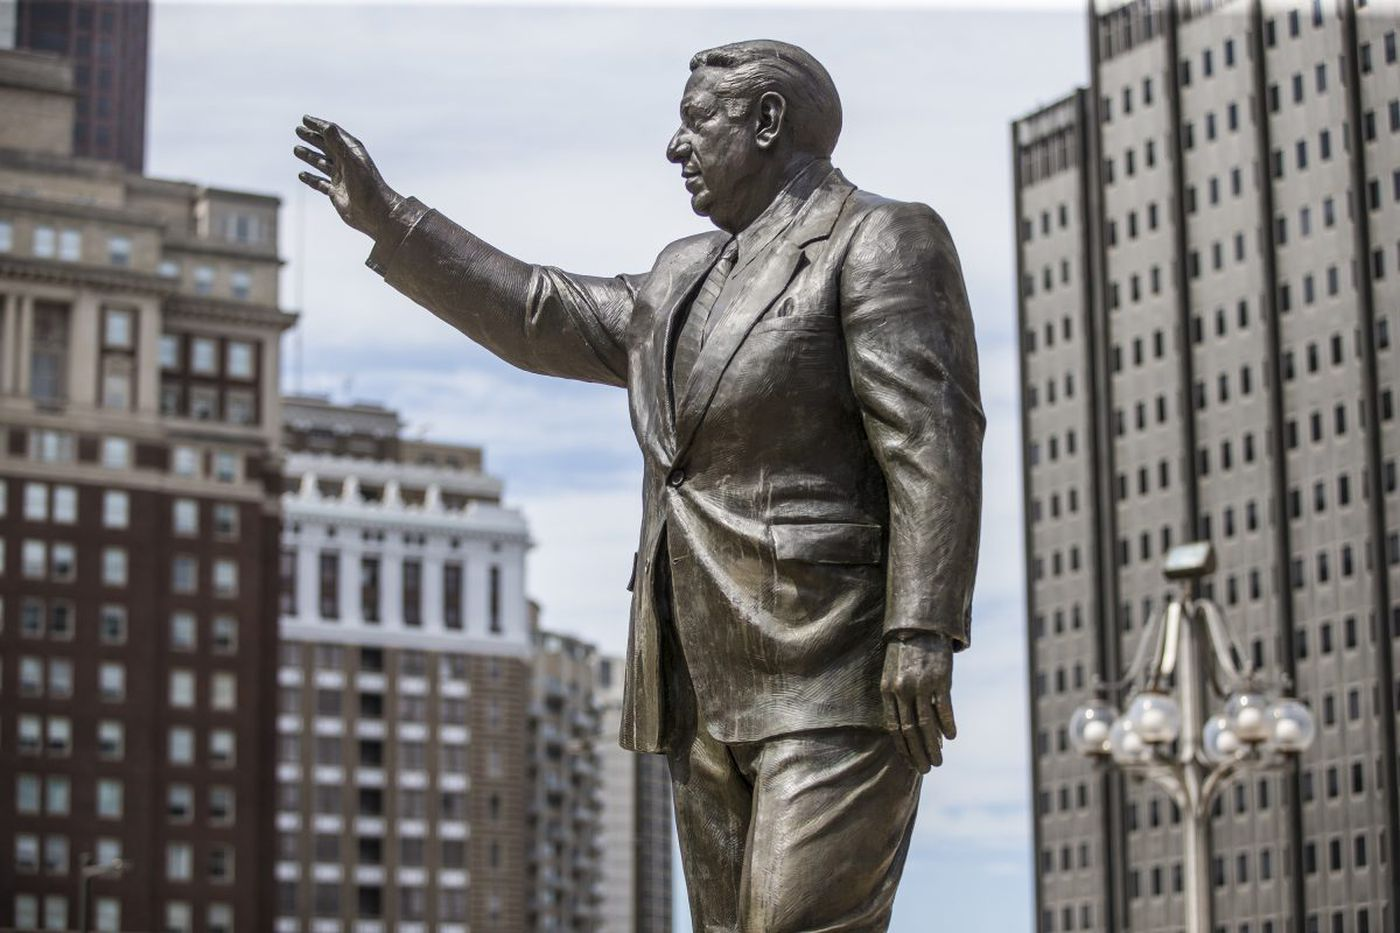 What could Philly do with the 2,000 pound Frank Rizzo statue?